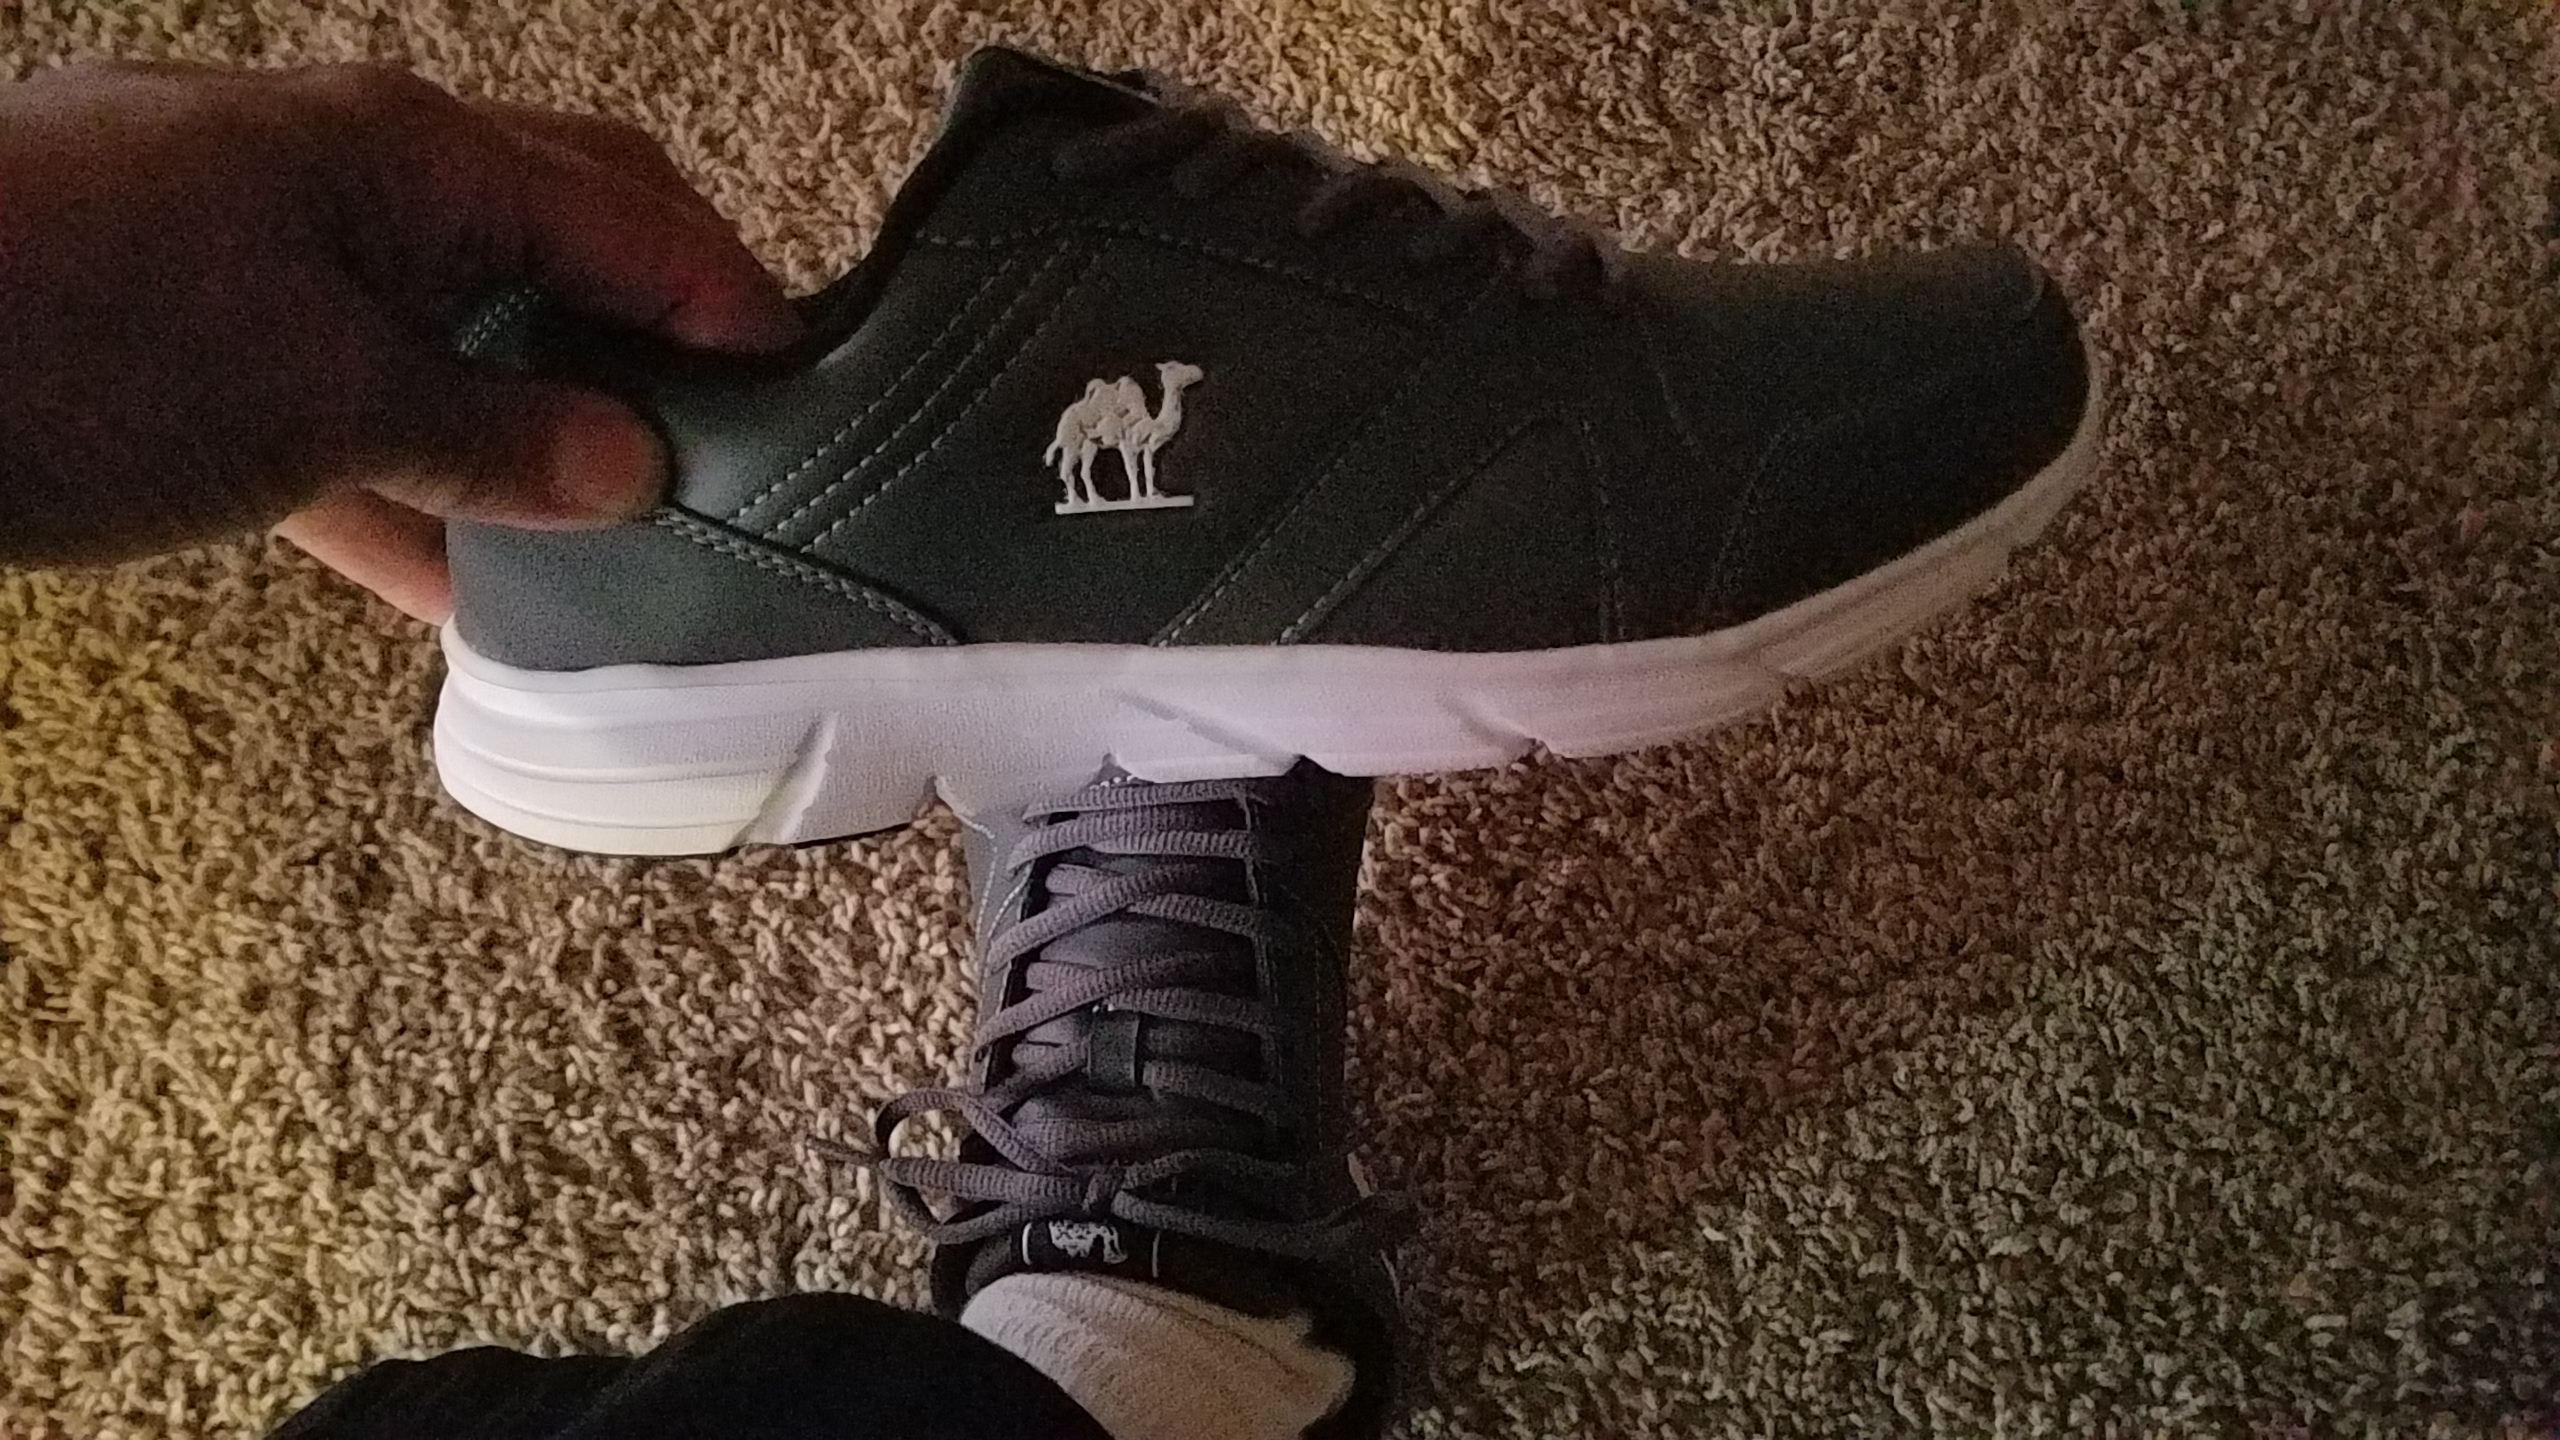 Love the design, but the right side shoe was too tight.